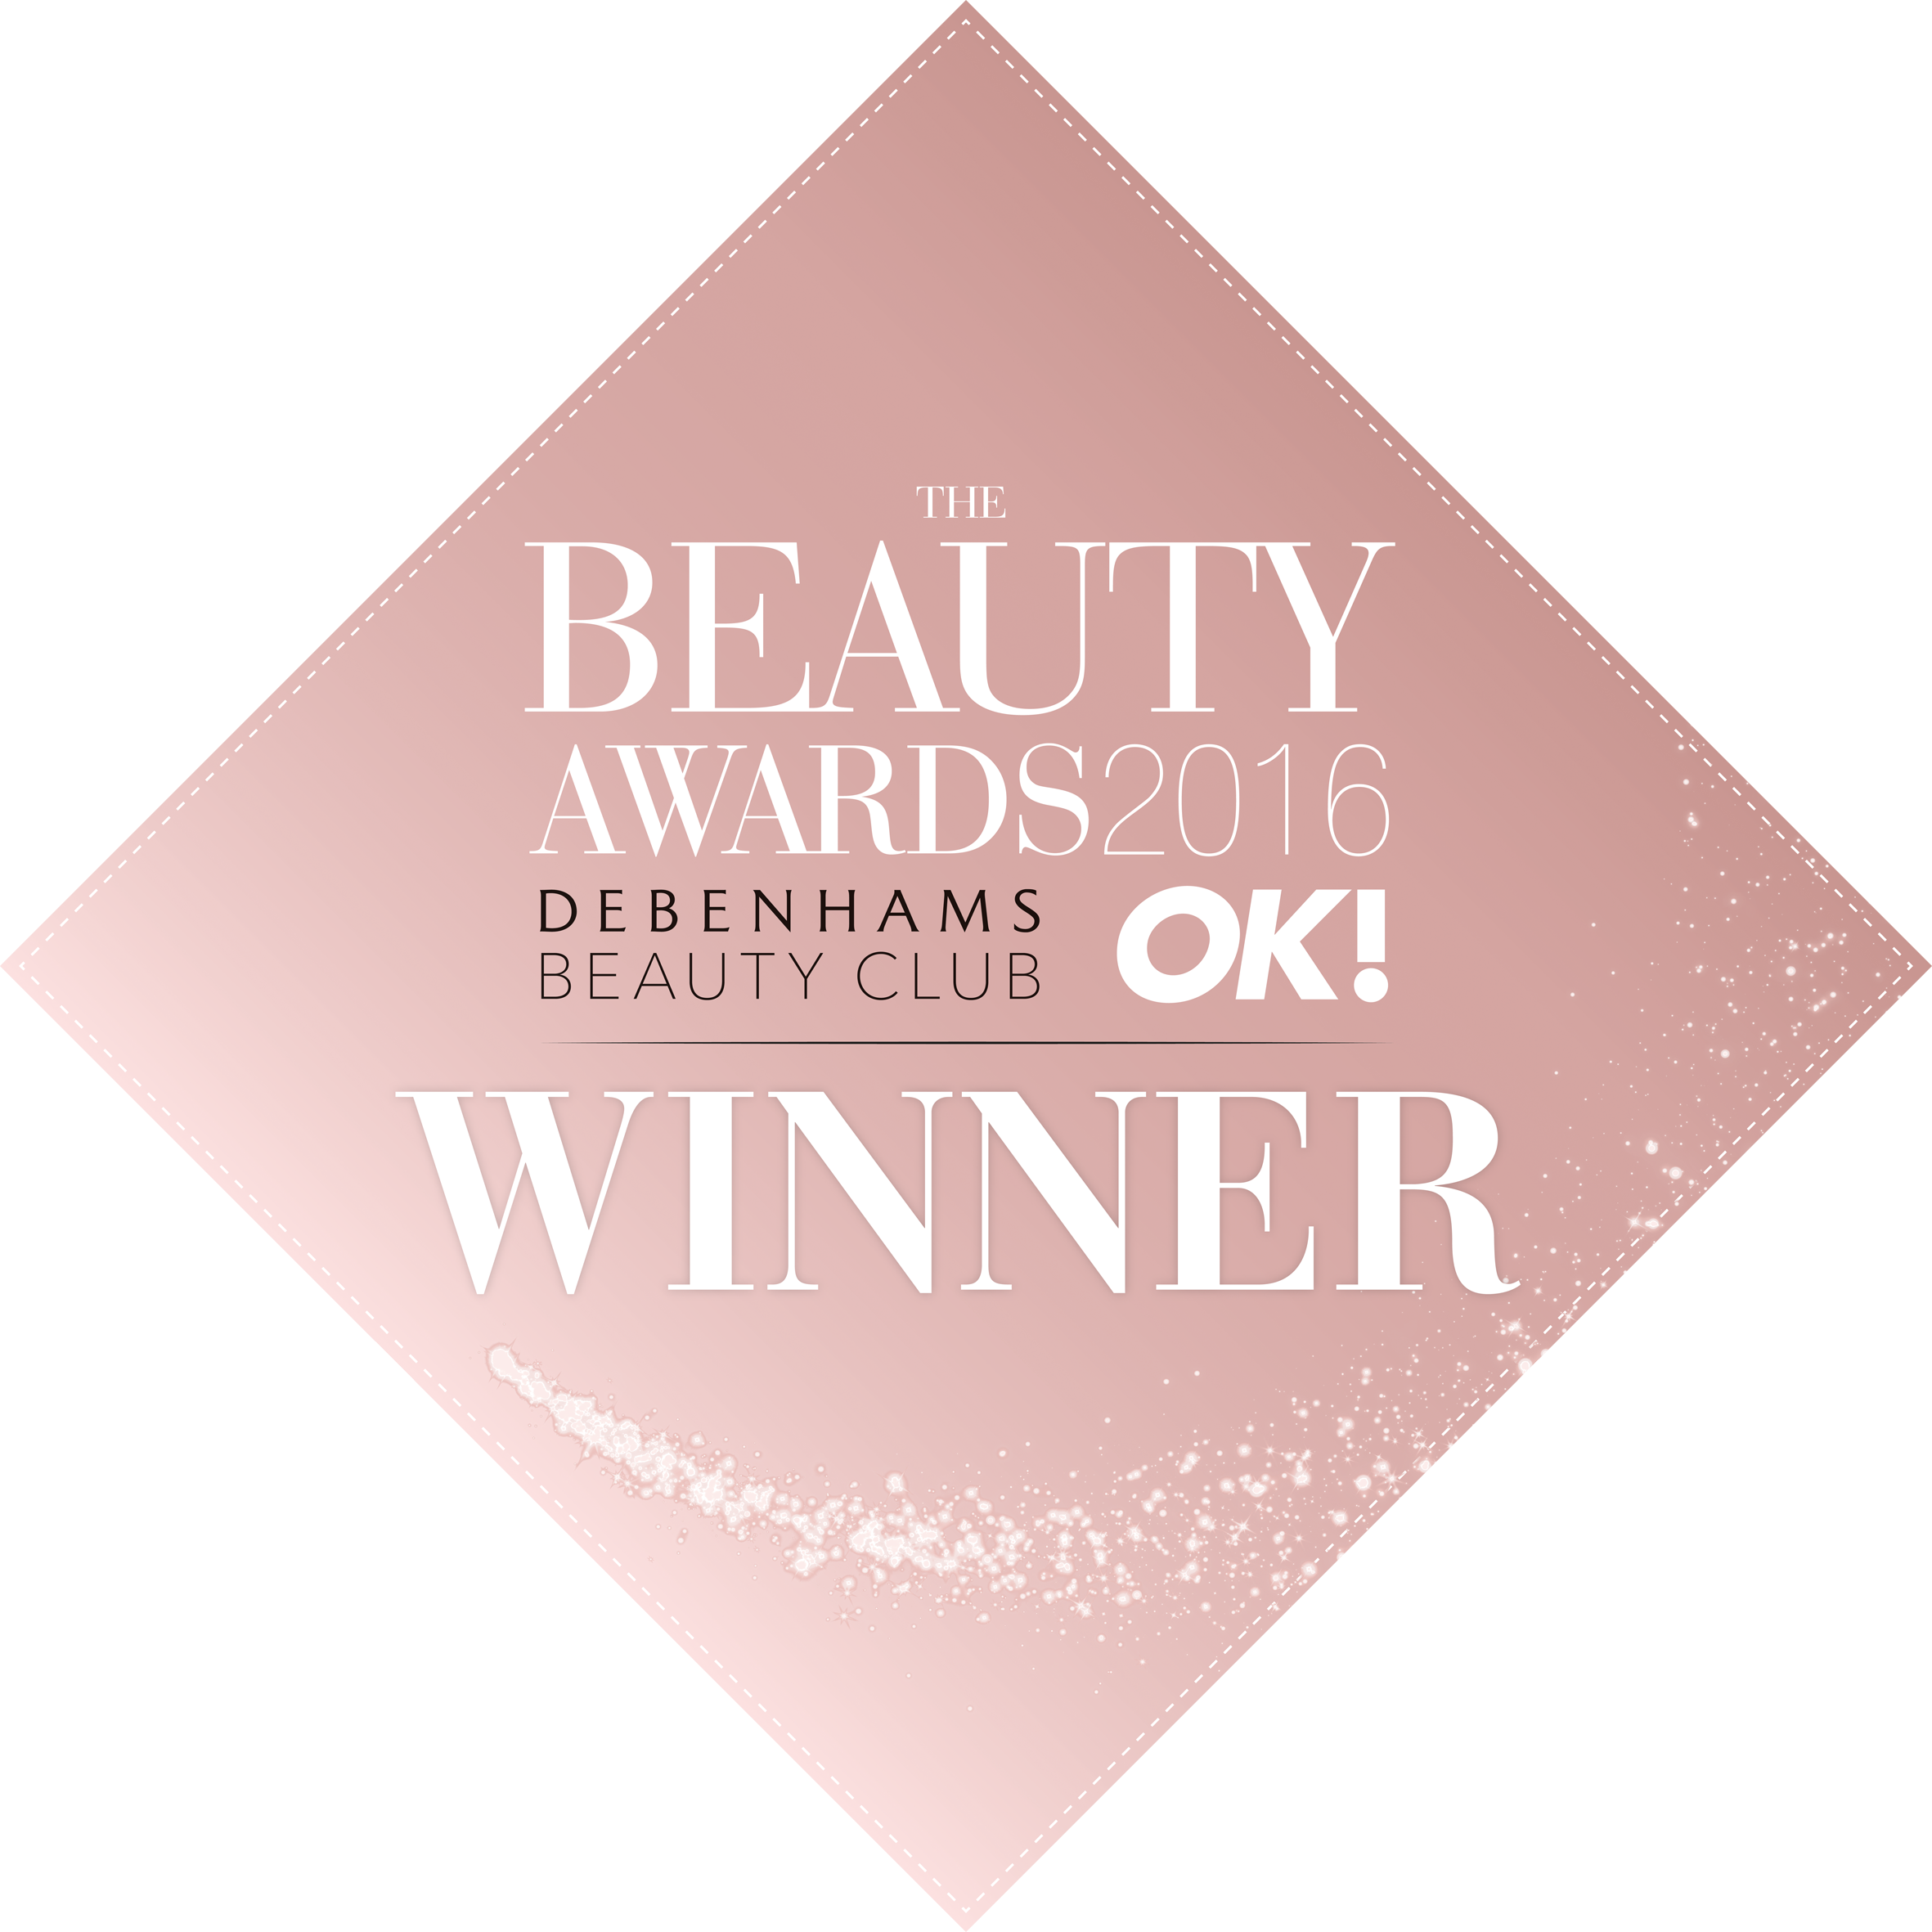 beautyawards-winner-badge-2016-pink.png